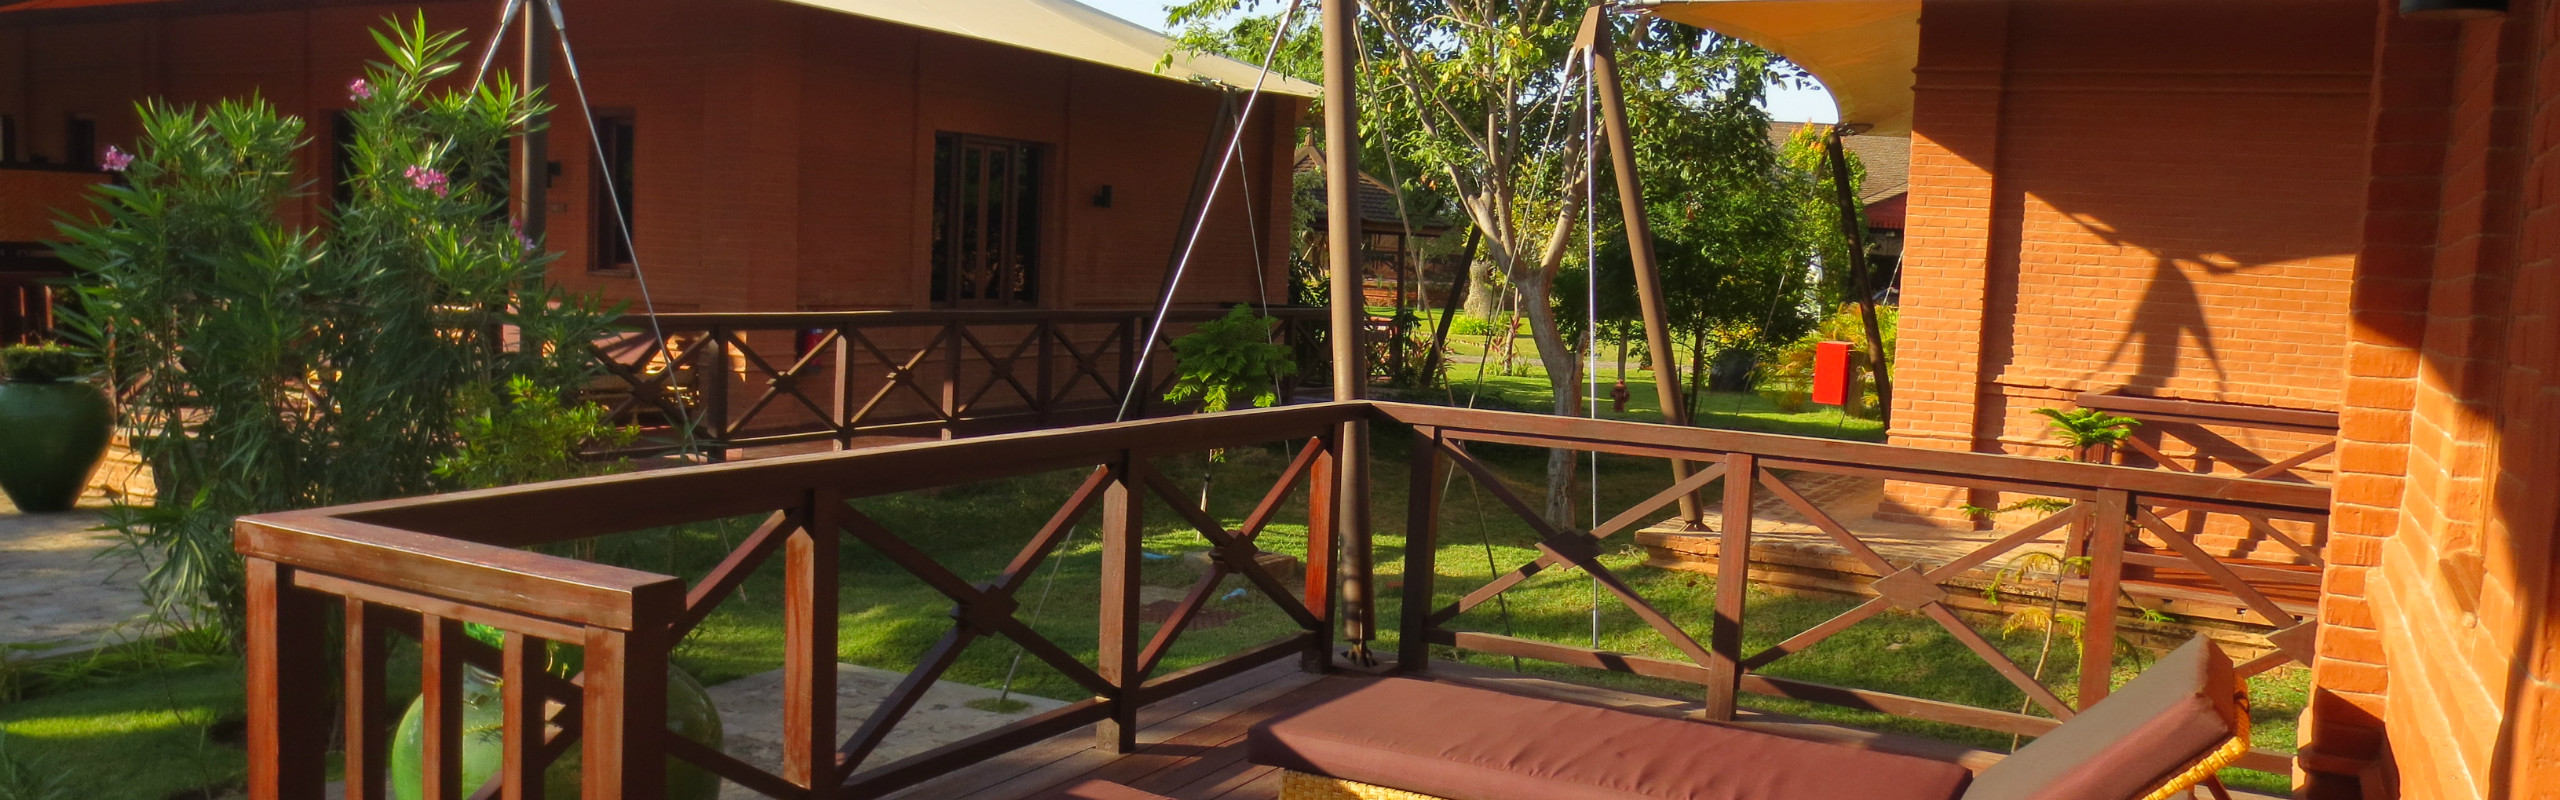 Top Hotels in Bagan - Resorts with Stupa View